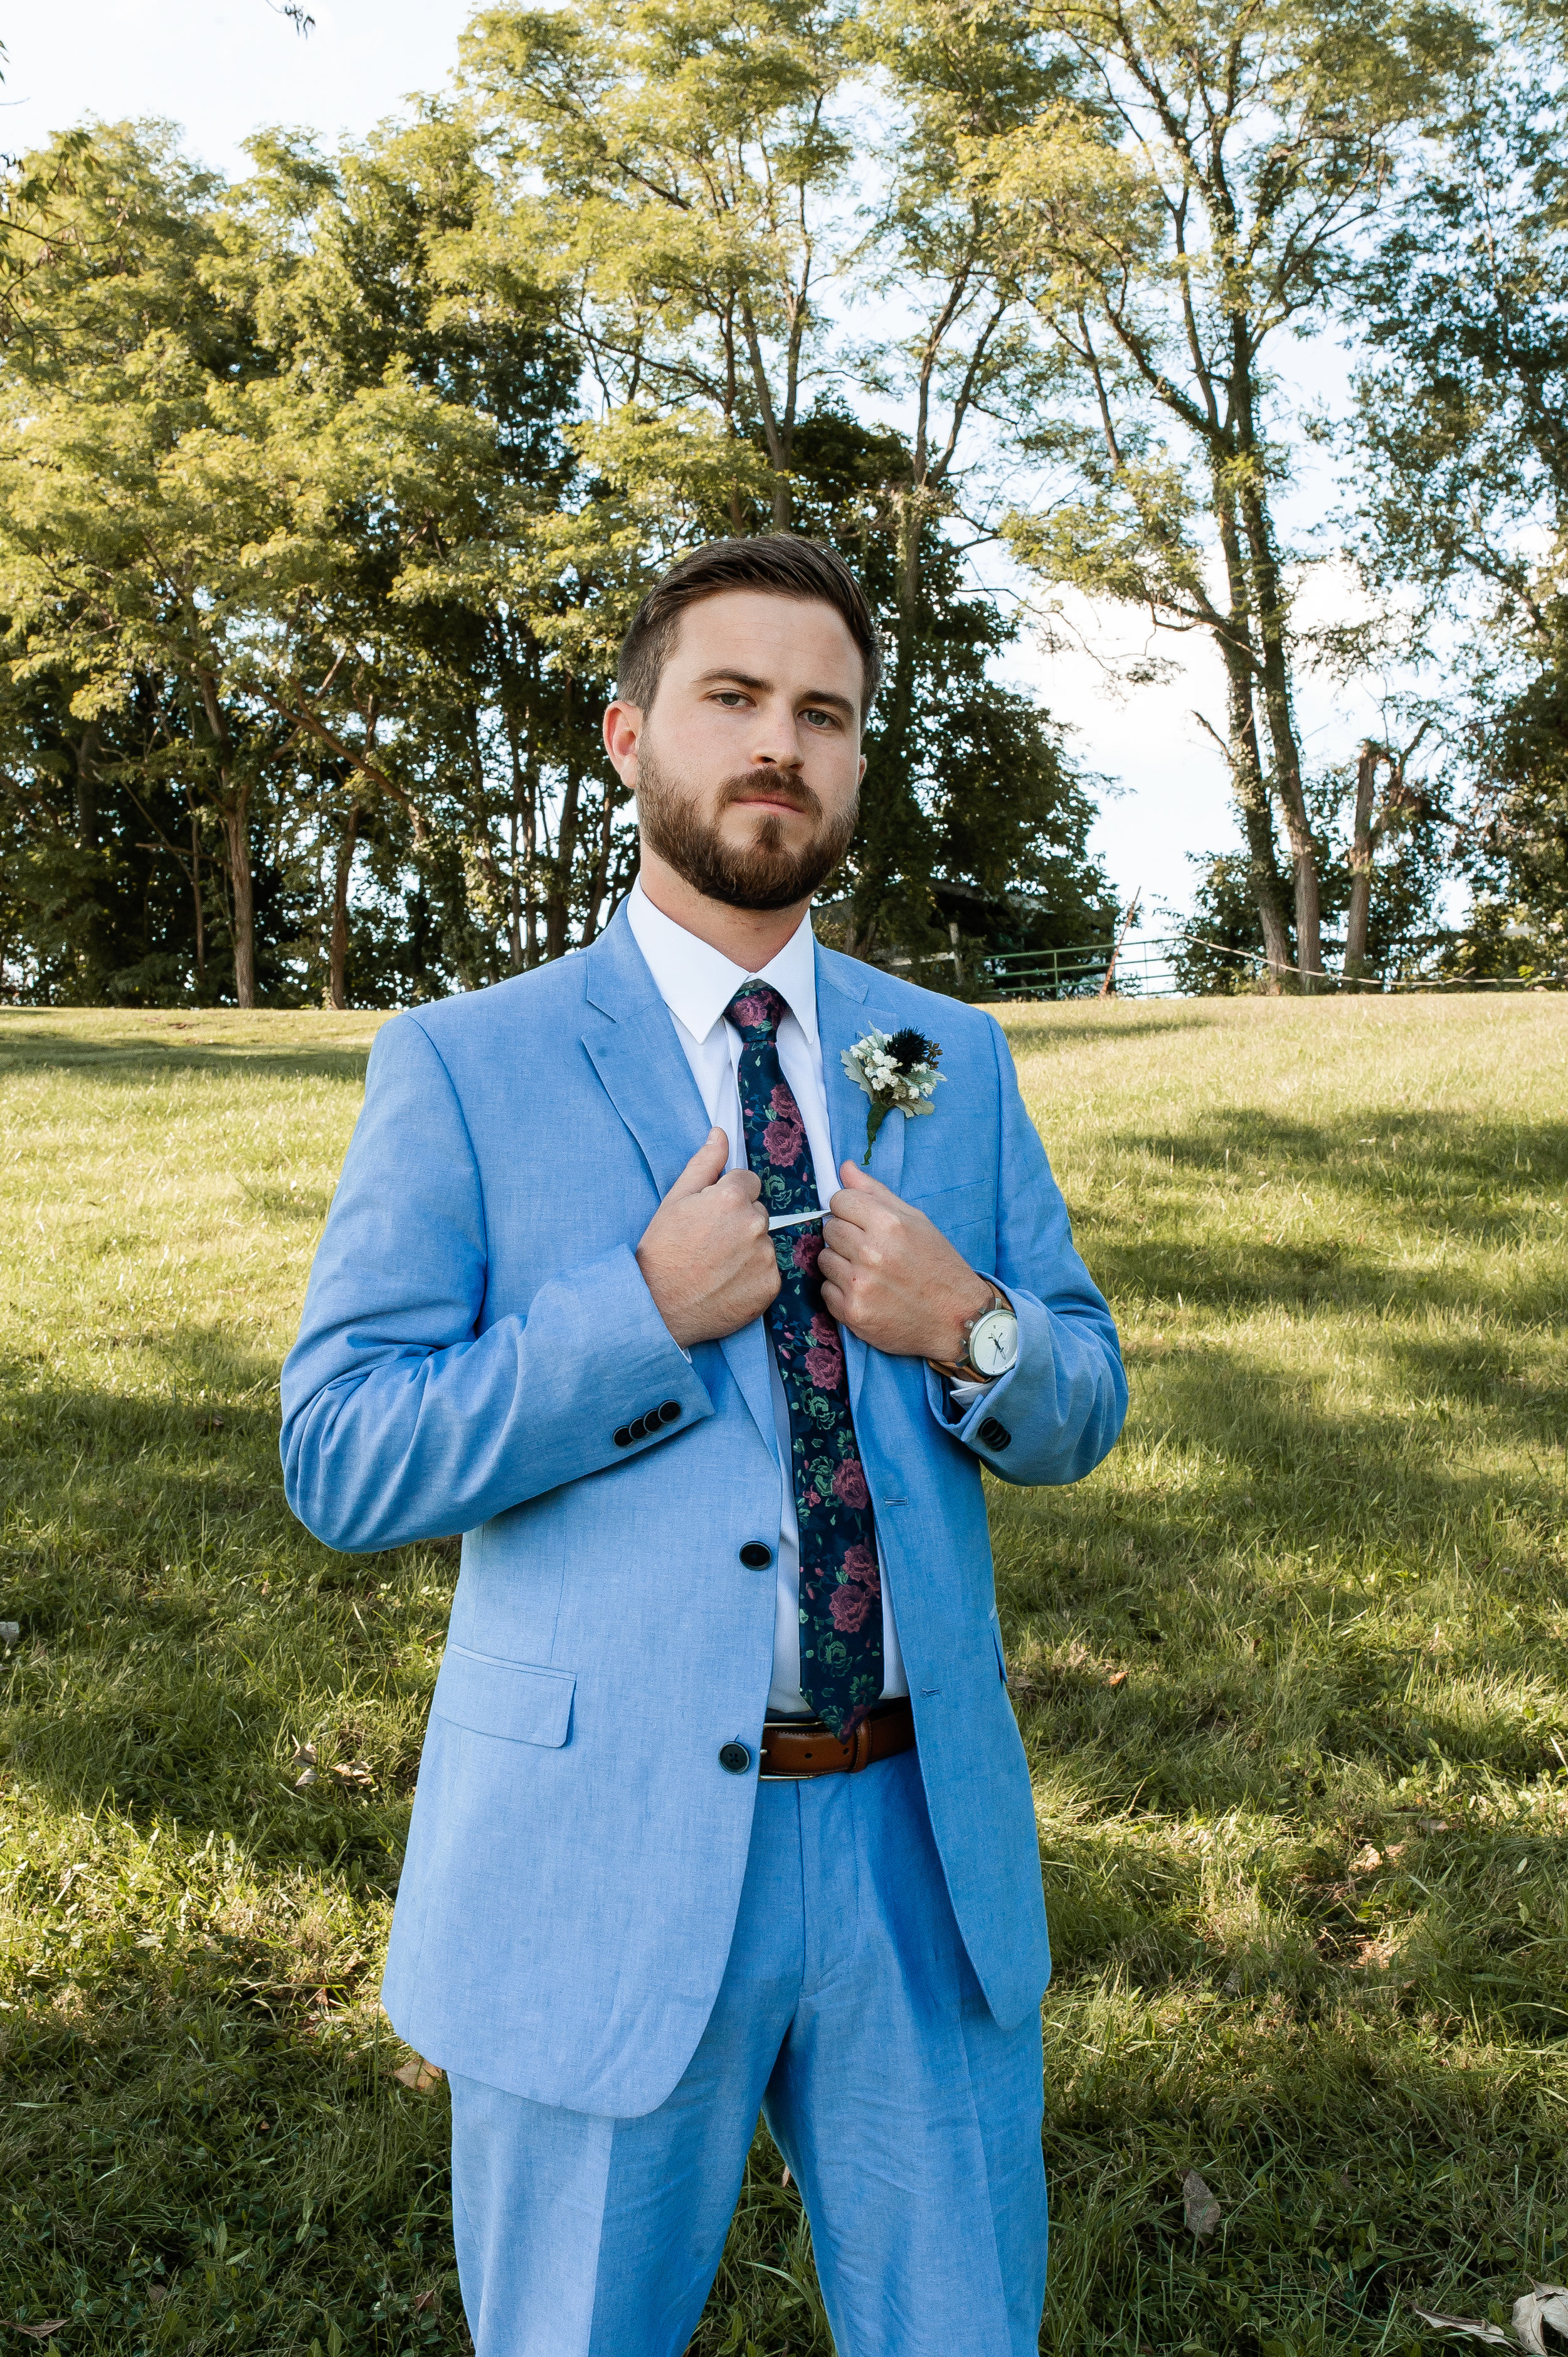 Chris looking dapper. Loved the unique floral tie and watch for his look.